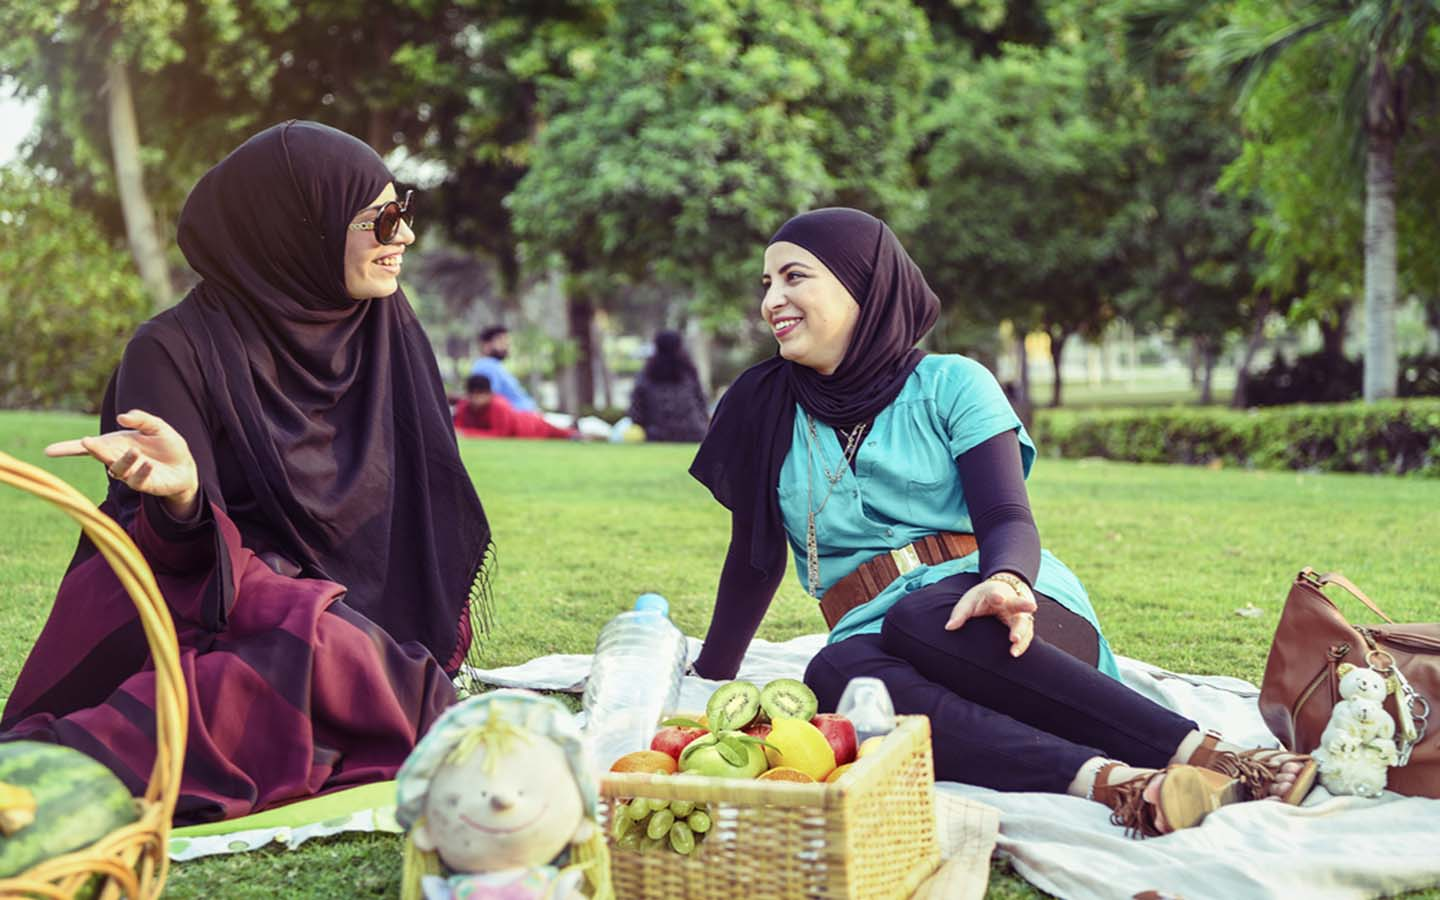 2 ladies enjoy a picnic in one of the few ladies only parks in Ras Al Khaimah